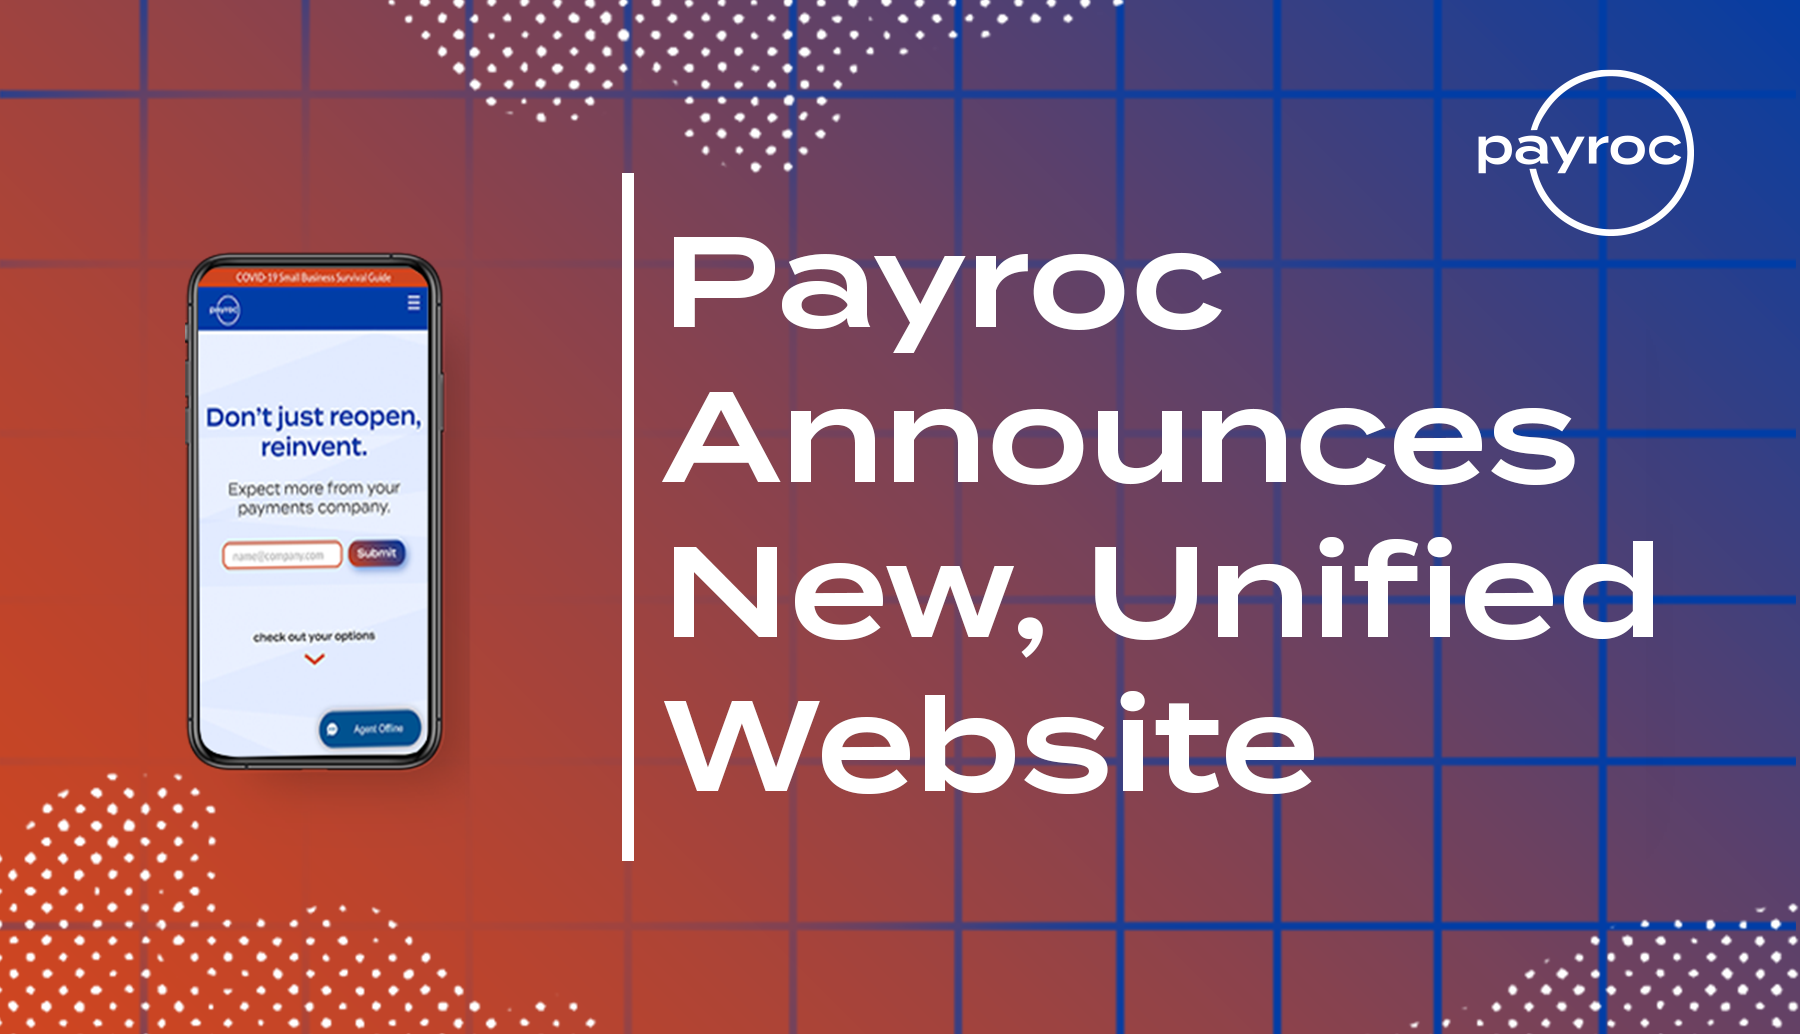 payroc-new-website